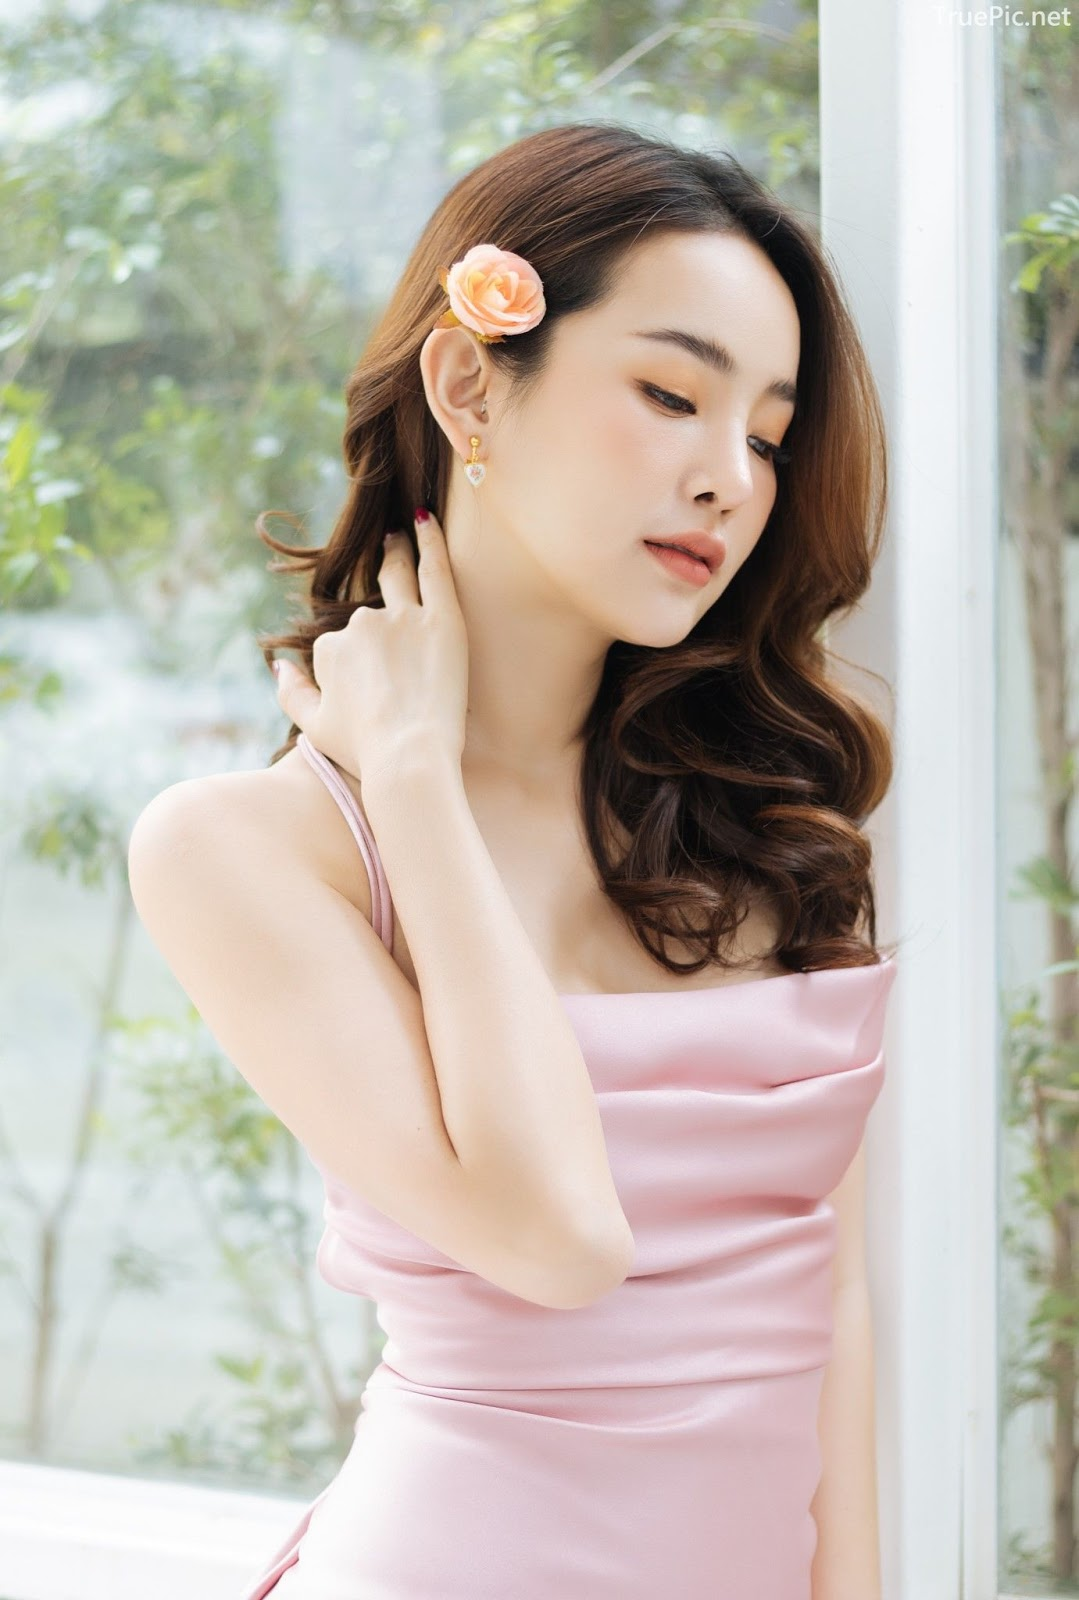 Beauty Thailand Pantipa Arunwattanachai attract glances from the photo album Stay Gorgeous - Picture 2